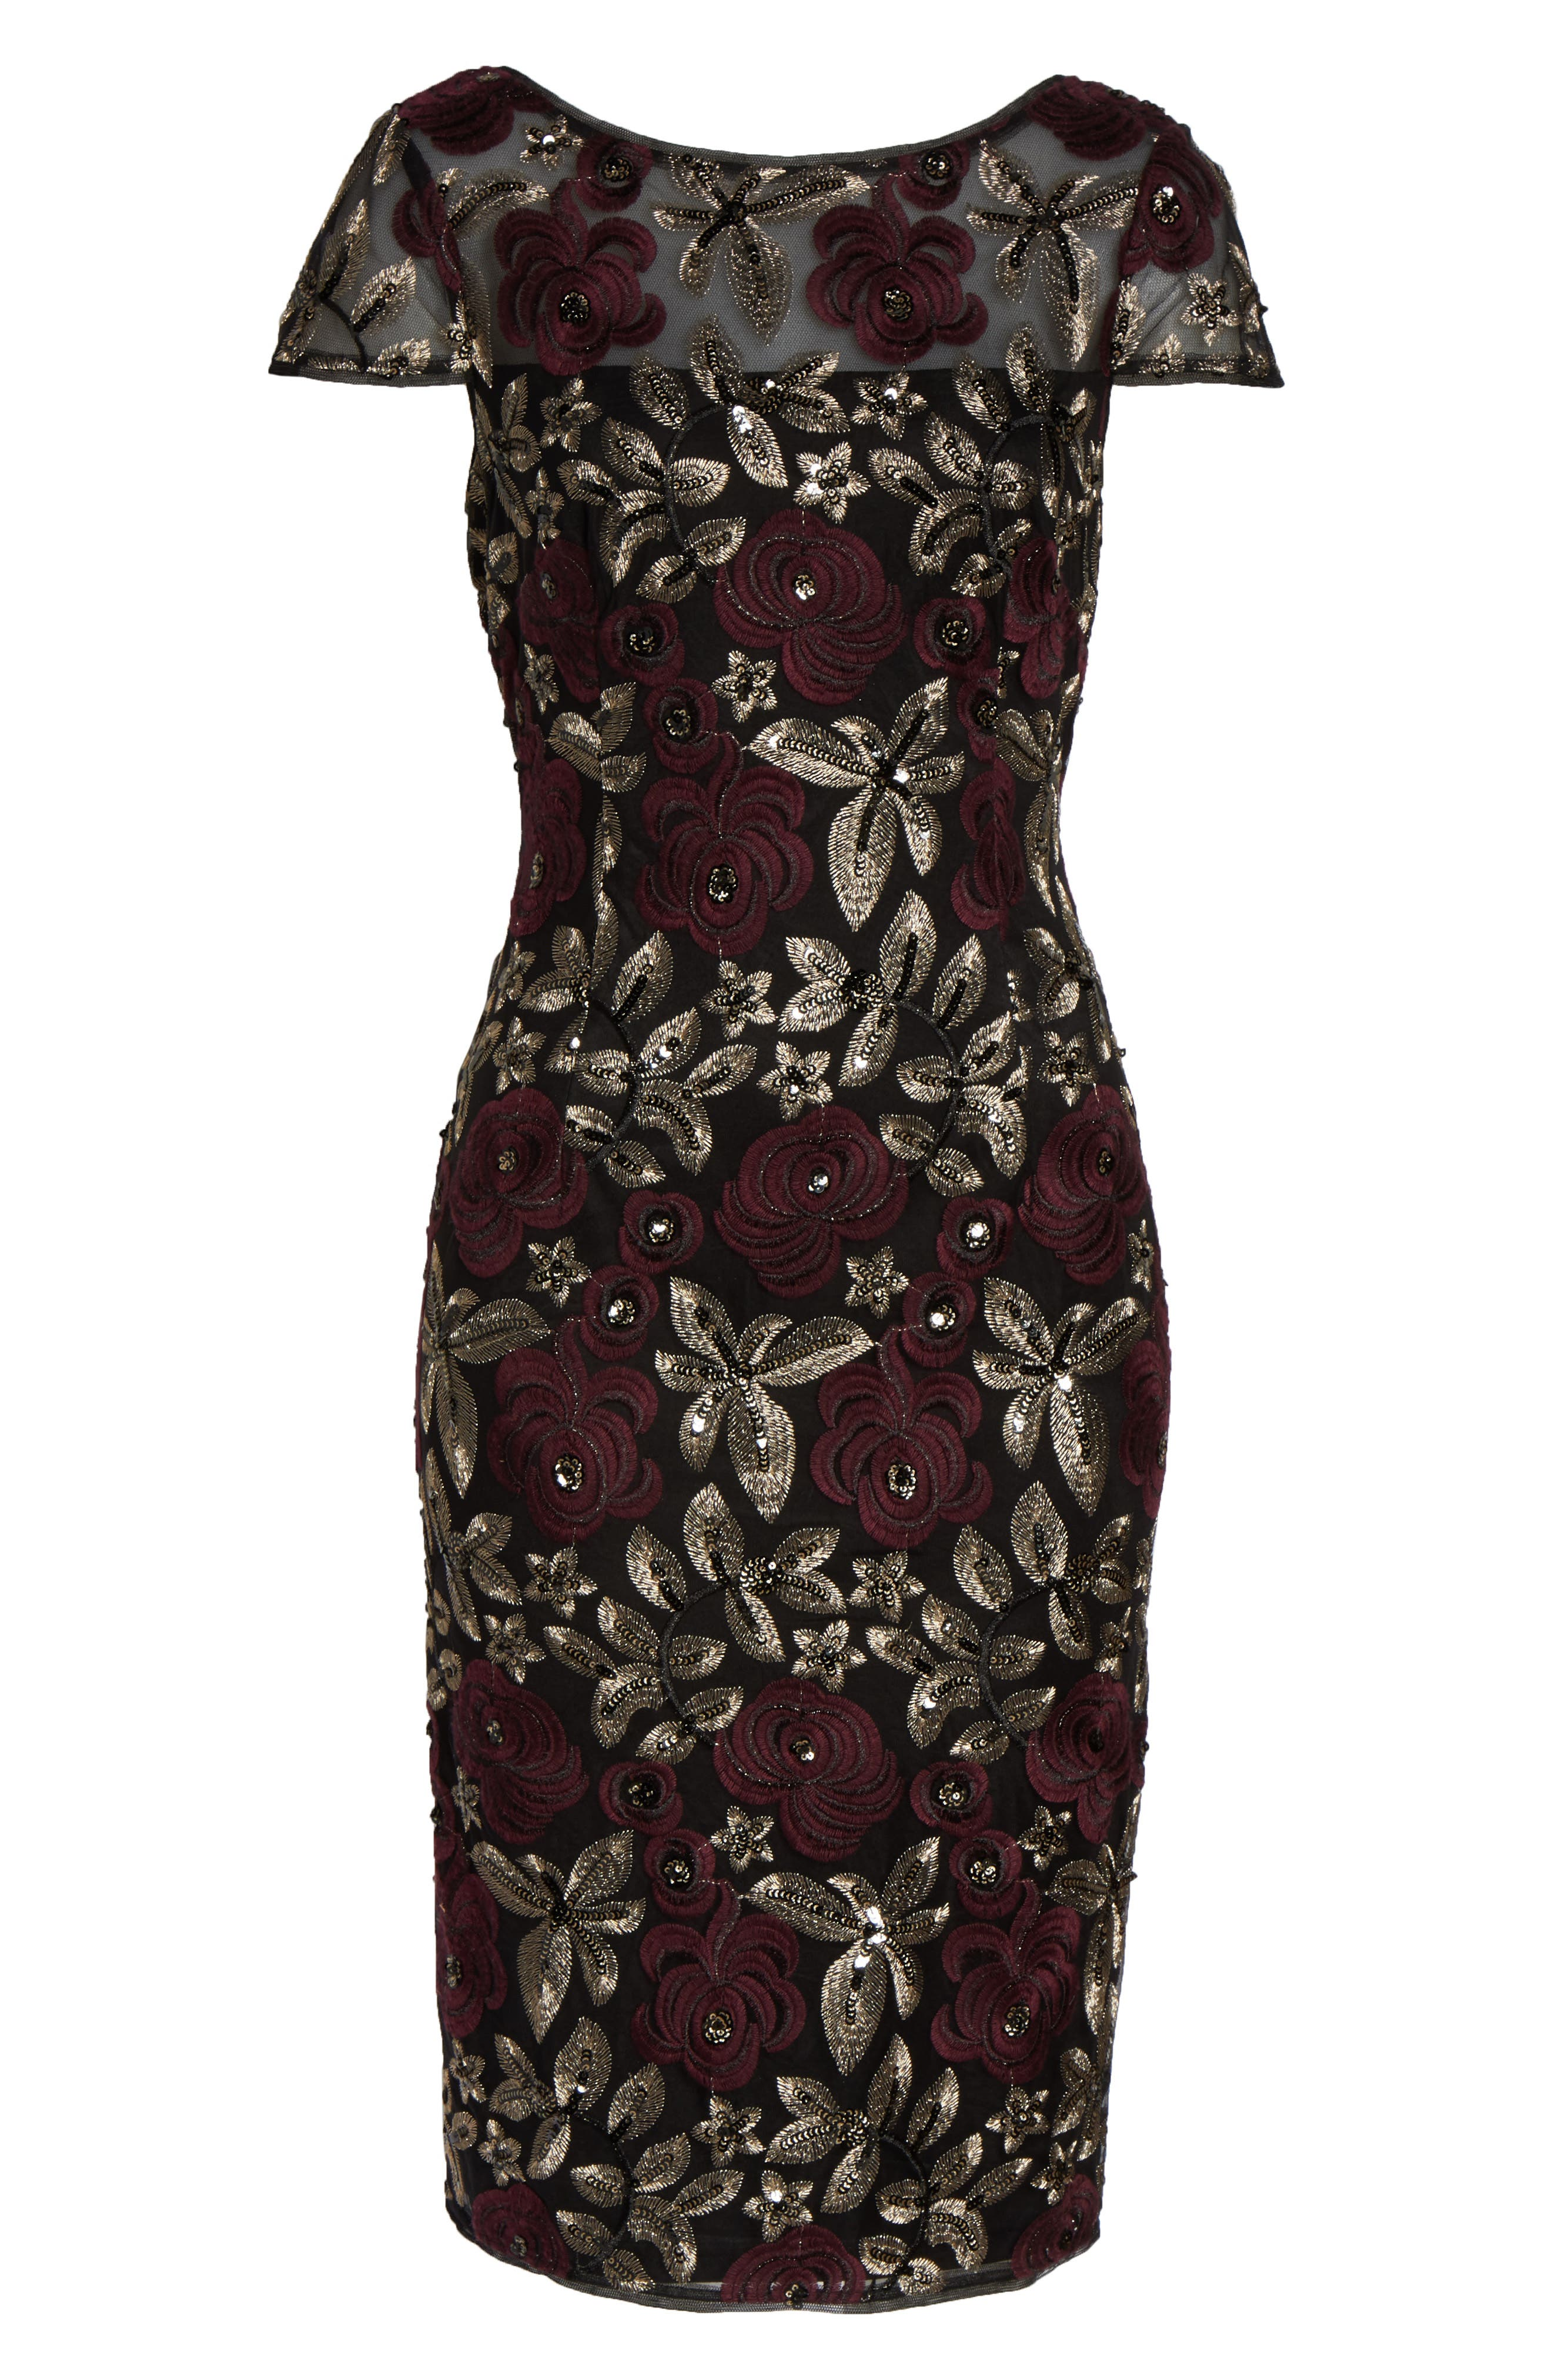 ADRIANNA PAPELL, Sequin Embroidered Cocktail Dress, Alternate thumbnail 7, color, 930